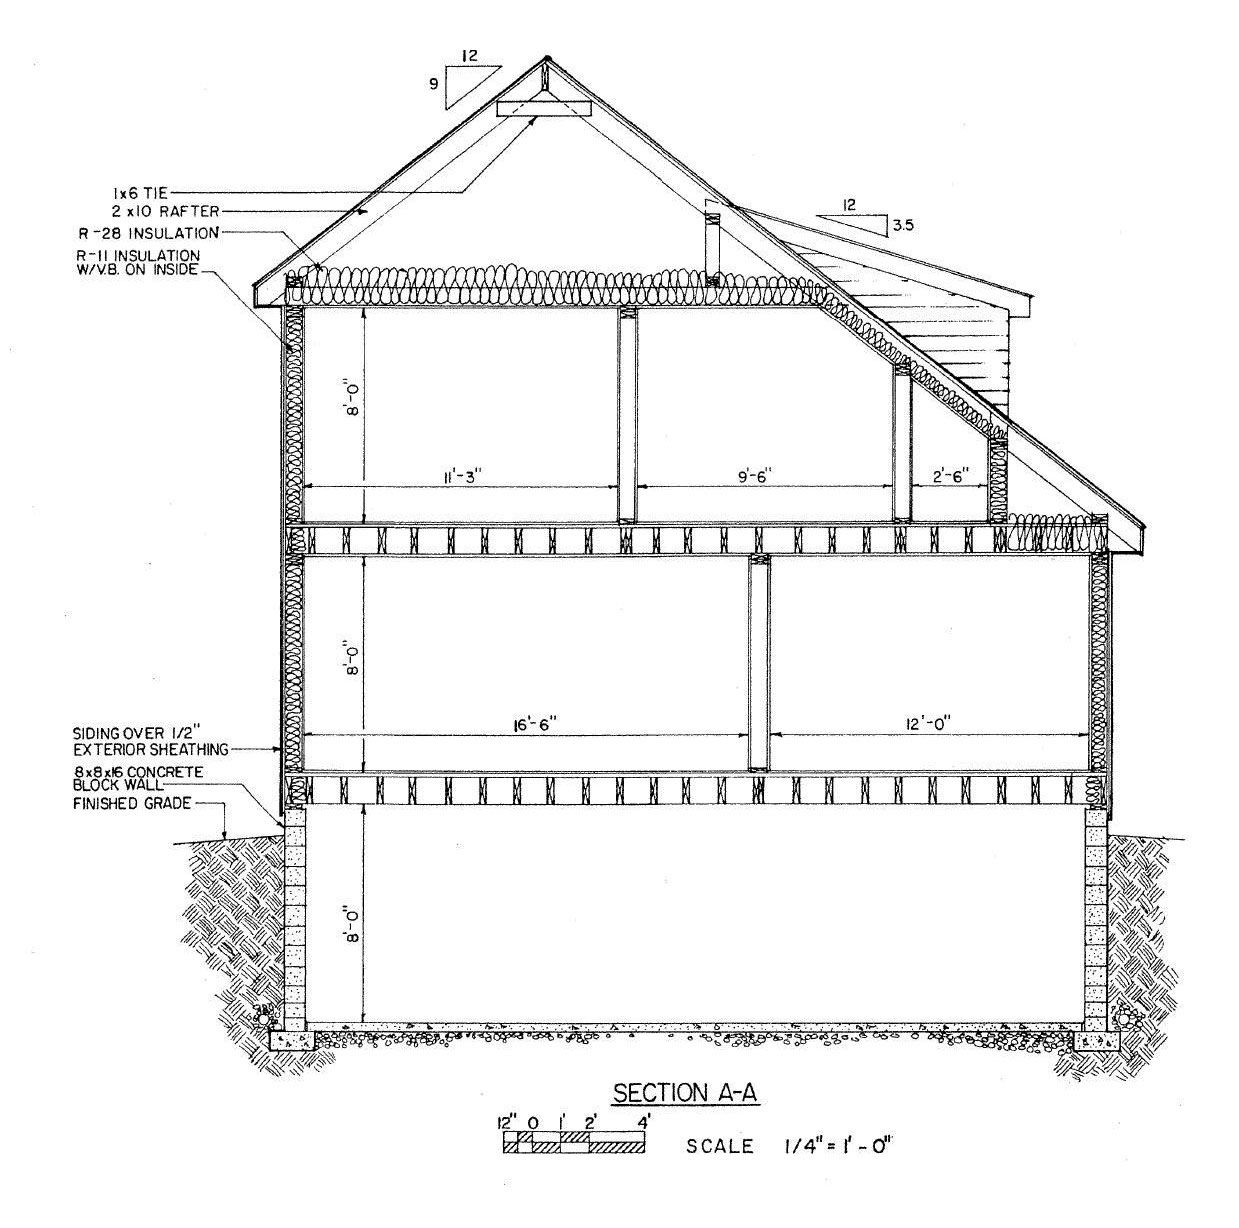 Saltbox Saltbox Home Cross Section Saltbox House Basement Foundation Plan Saltbox Houses Garage House Plans House Plans